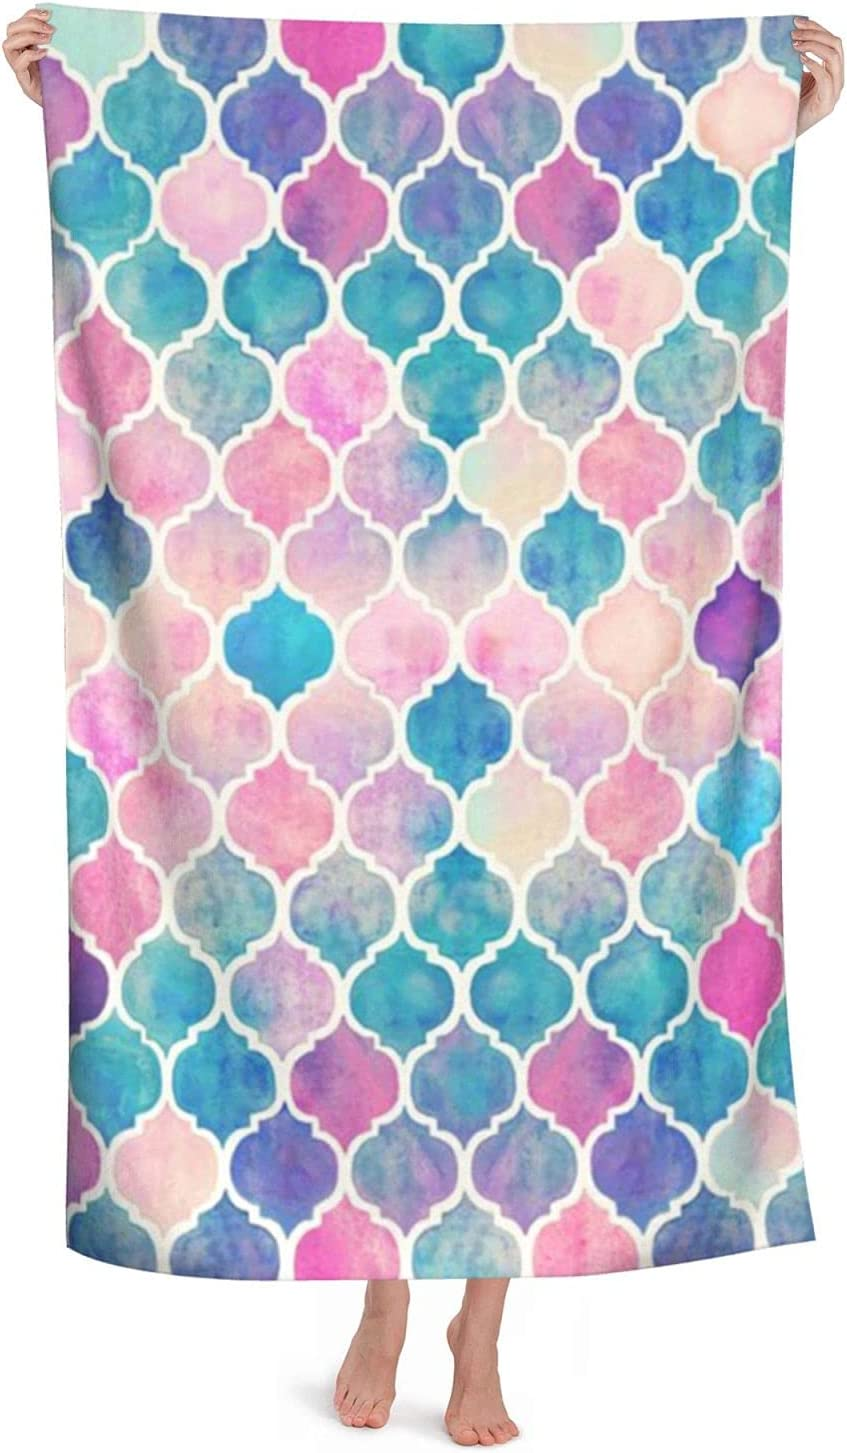 Rainbow Pastel Watercolor Financial sales sale Beach Towels - 2021 autumn and winter new To Dry Pool Quick Large